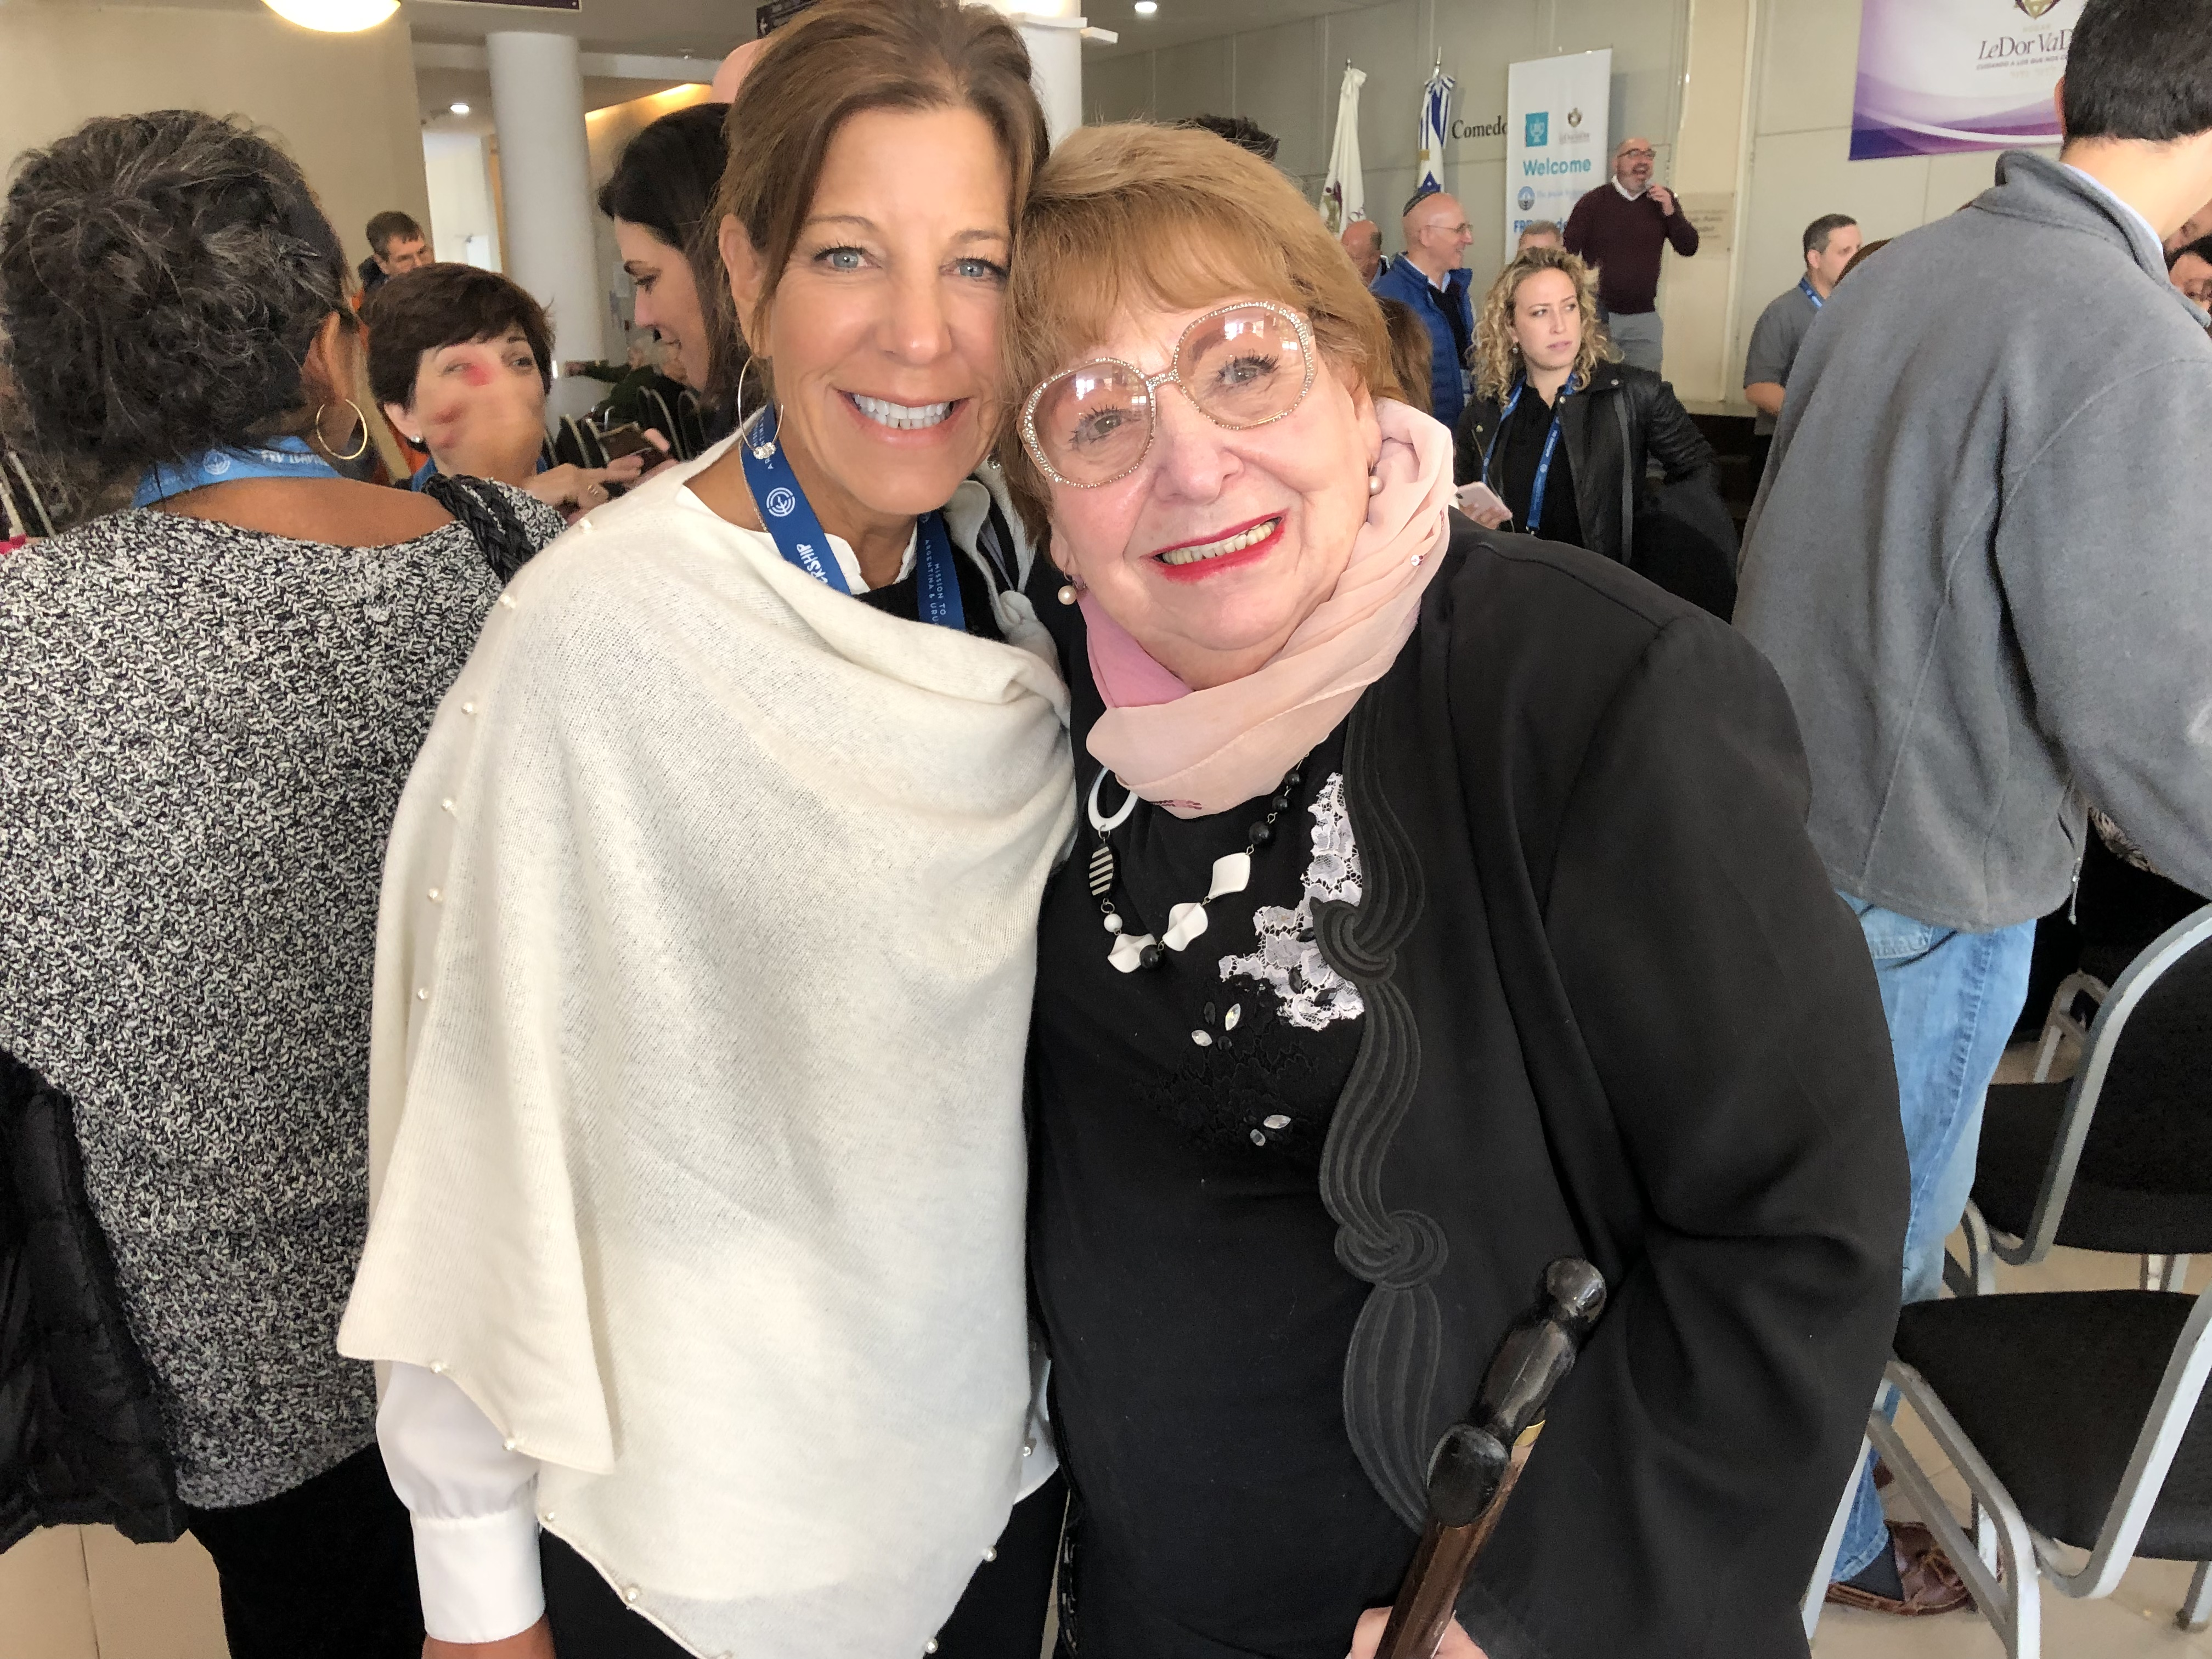 Wendy with a Senior Resident